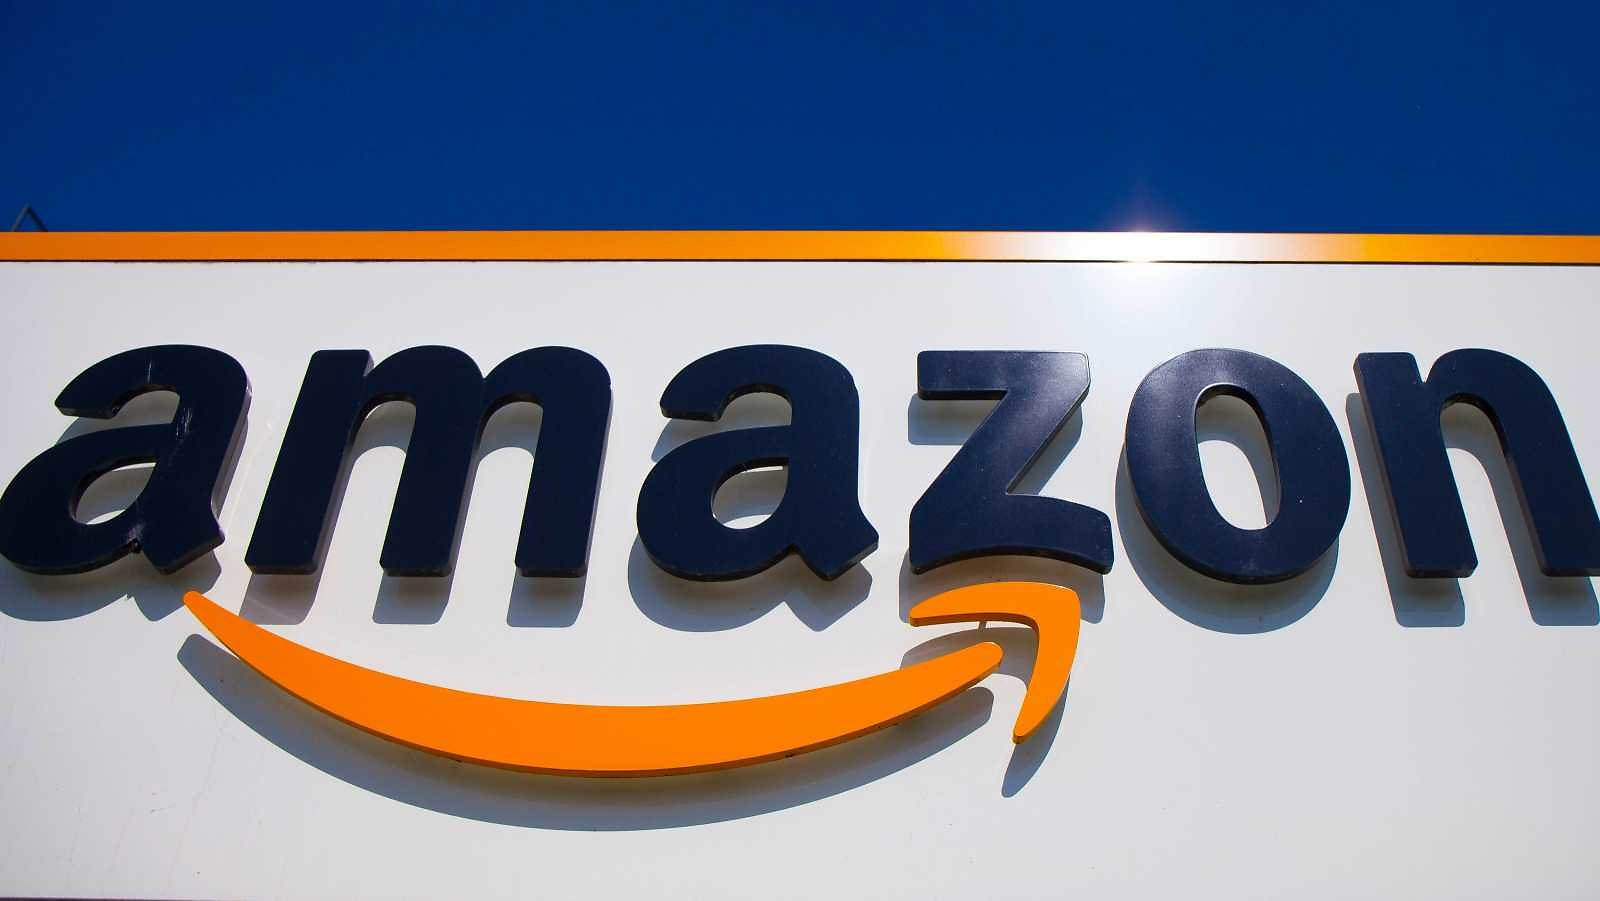 Should You Opt Out of Amazon Sidewalk? And Other Happenings in The World of Tech This Week